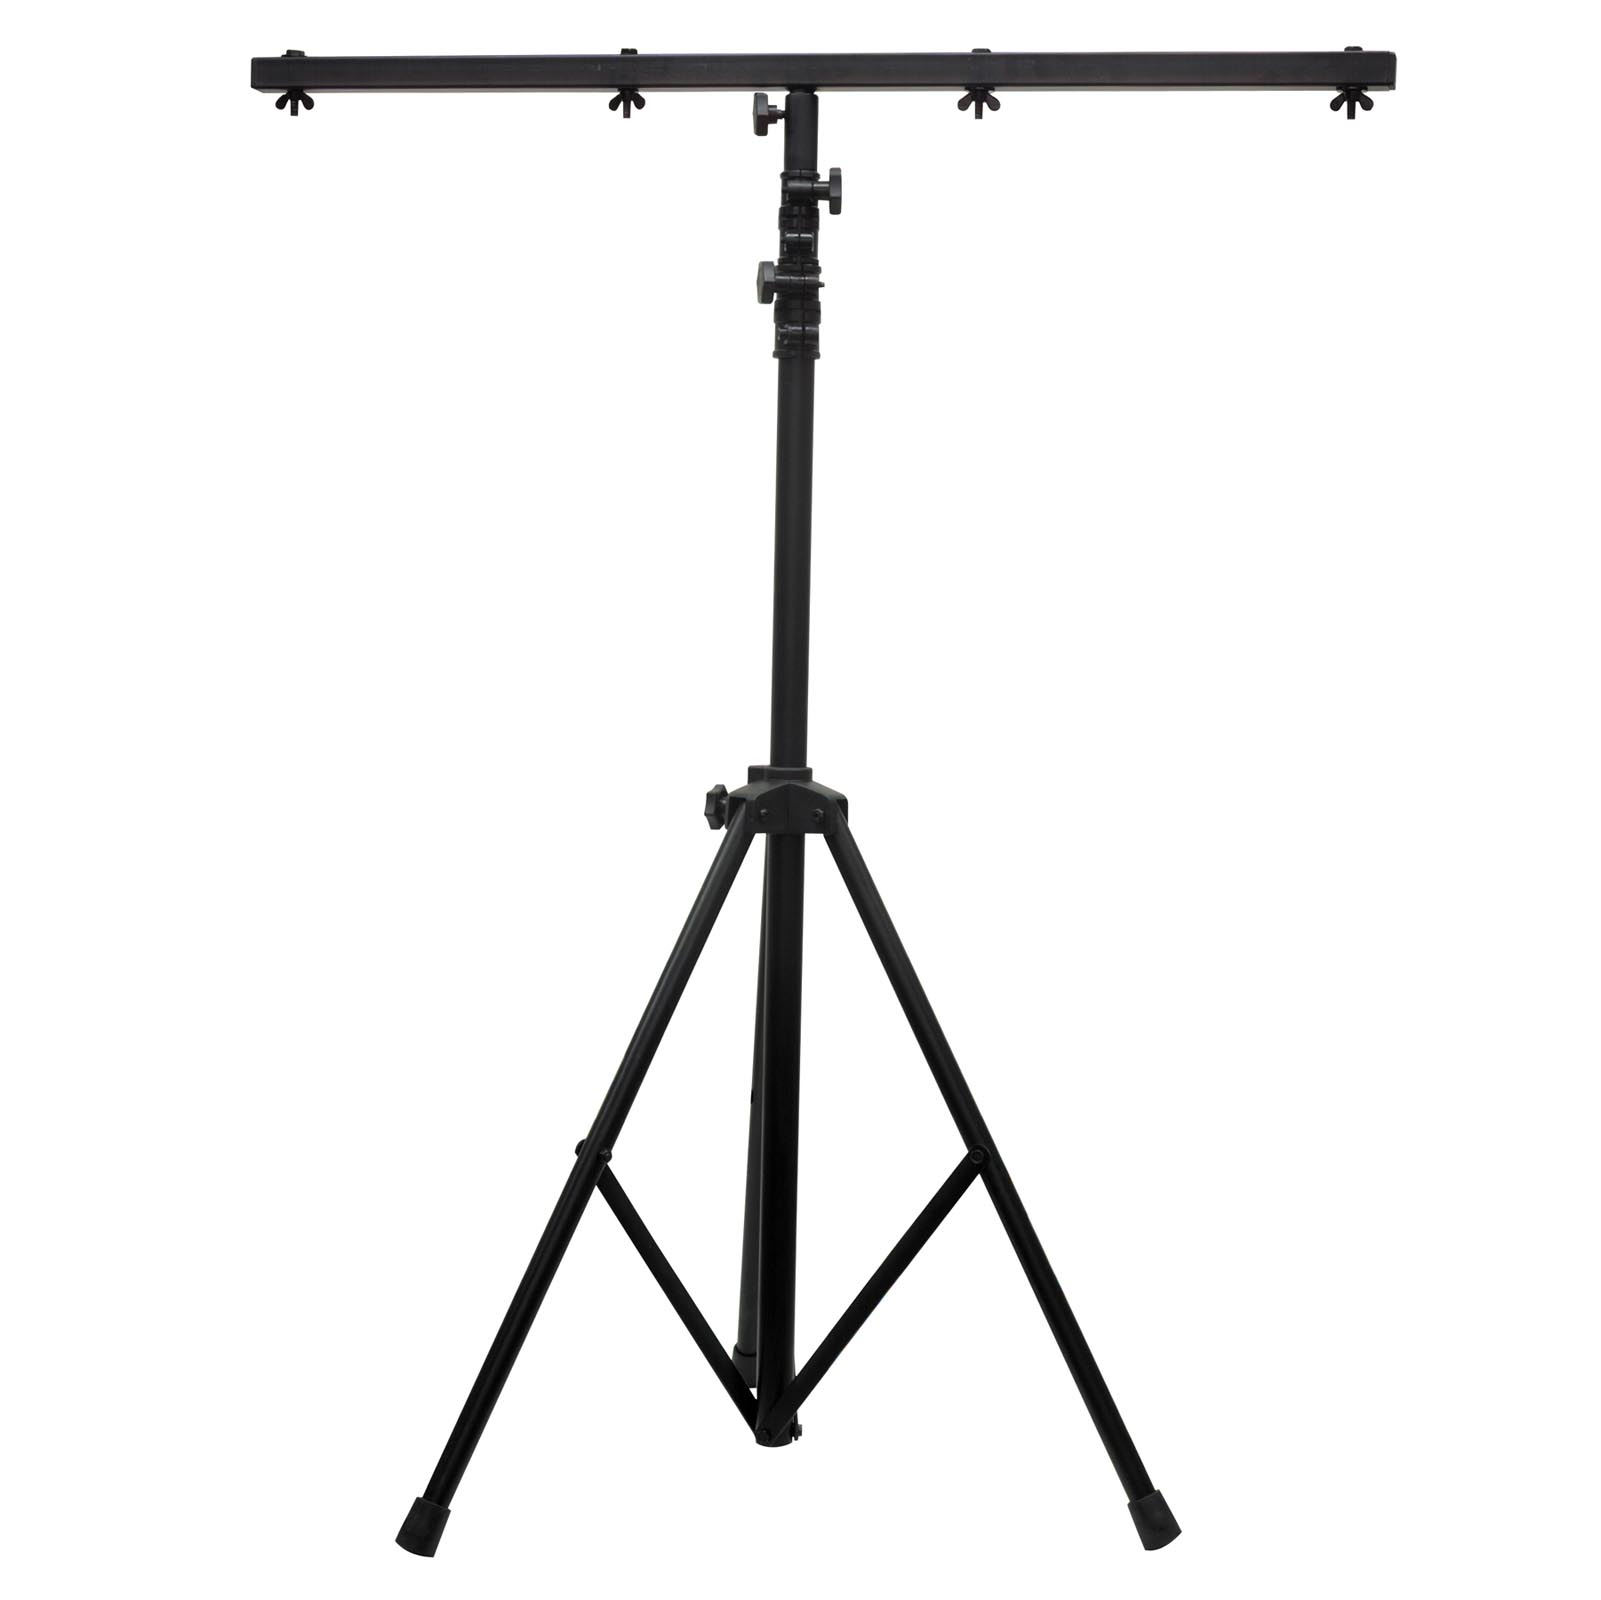 American DJ 9 Ft Black Lighting Tripod T-Bar Light Stand w  Cross Bar | LTS-6 by ADJ